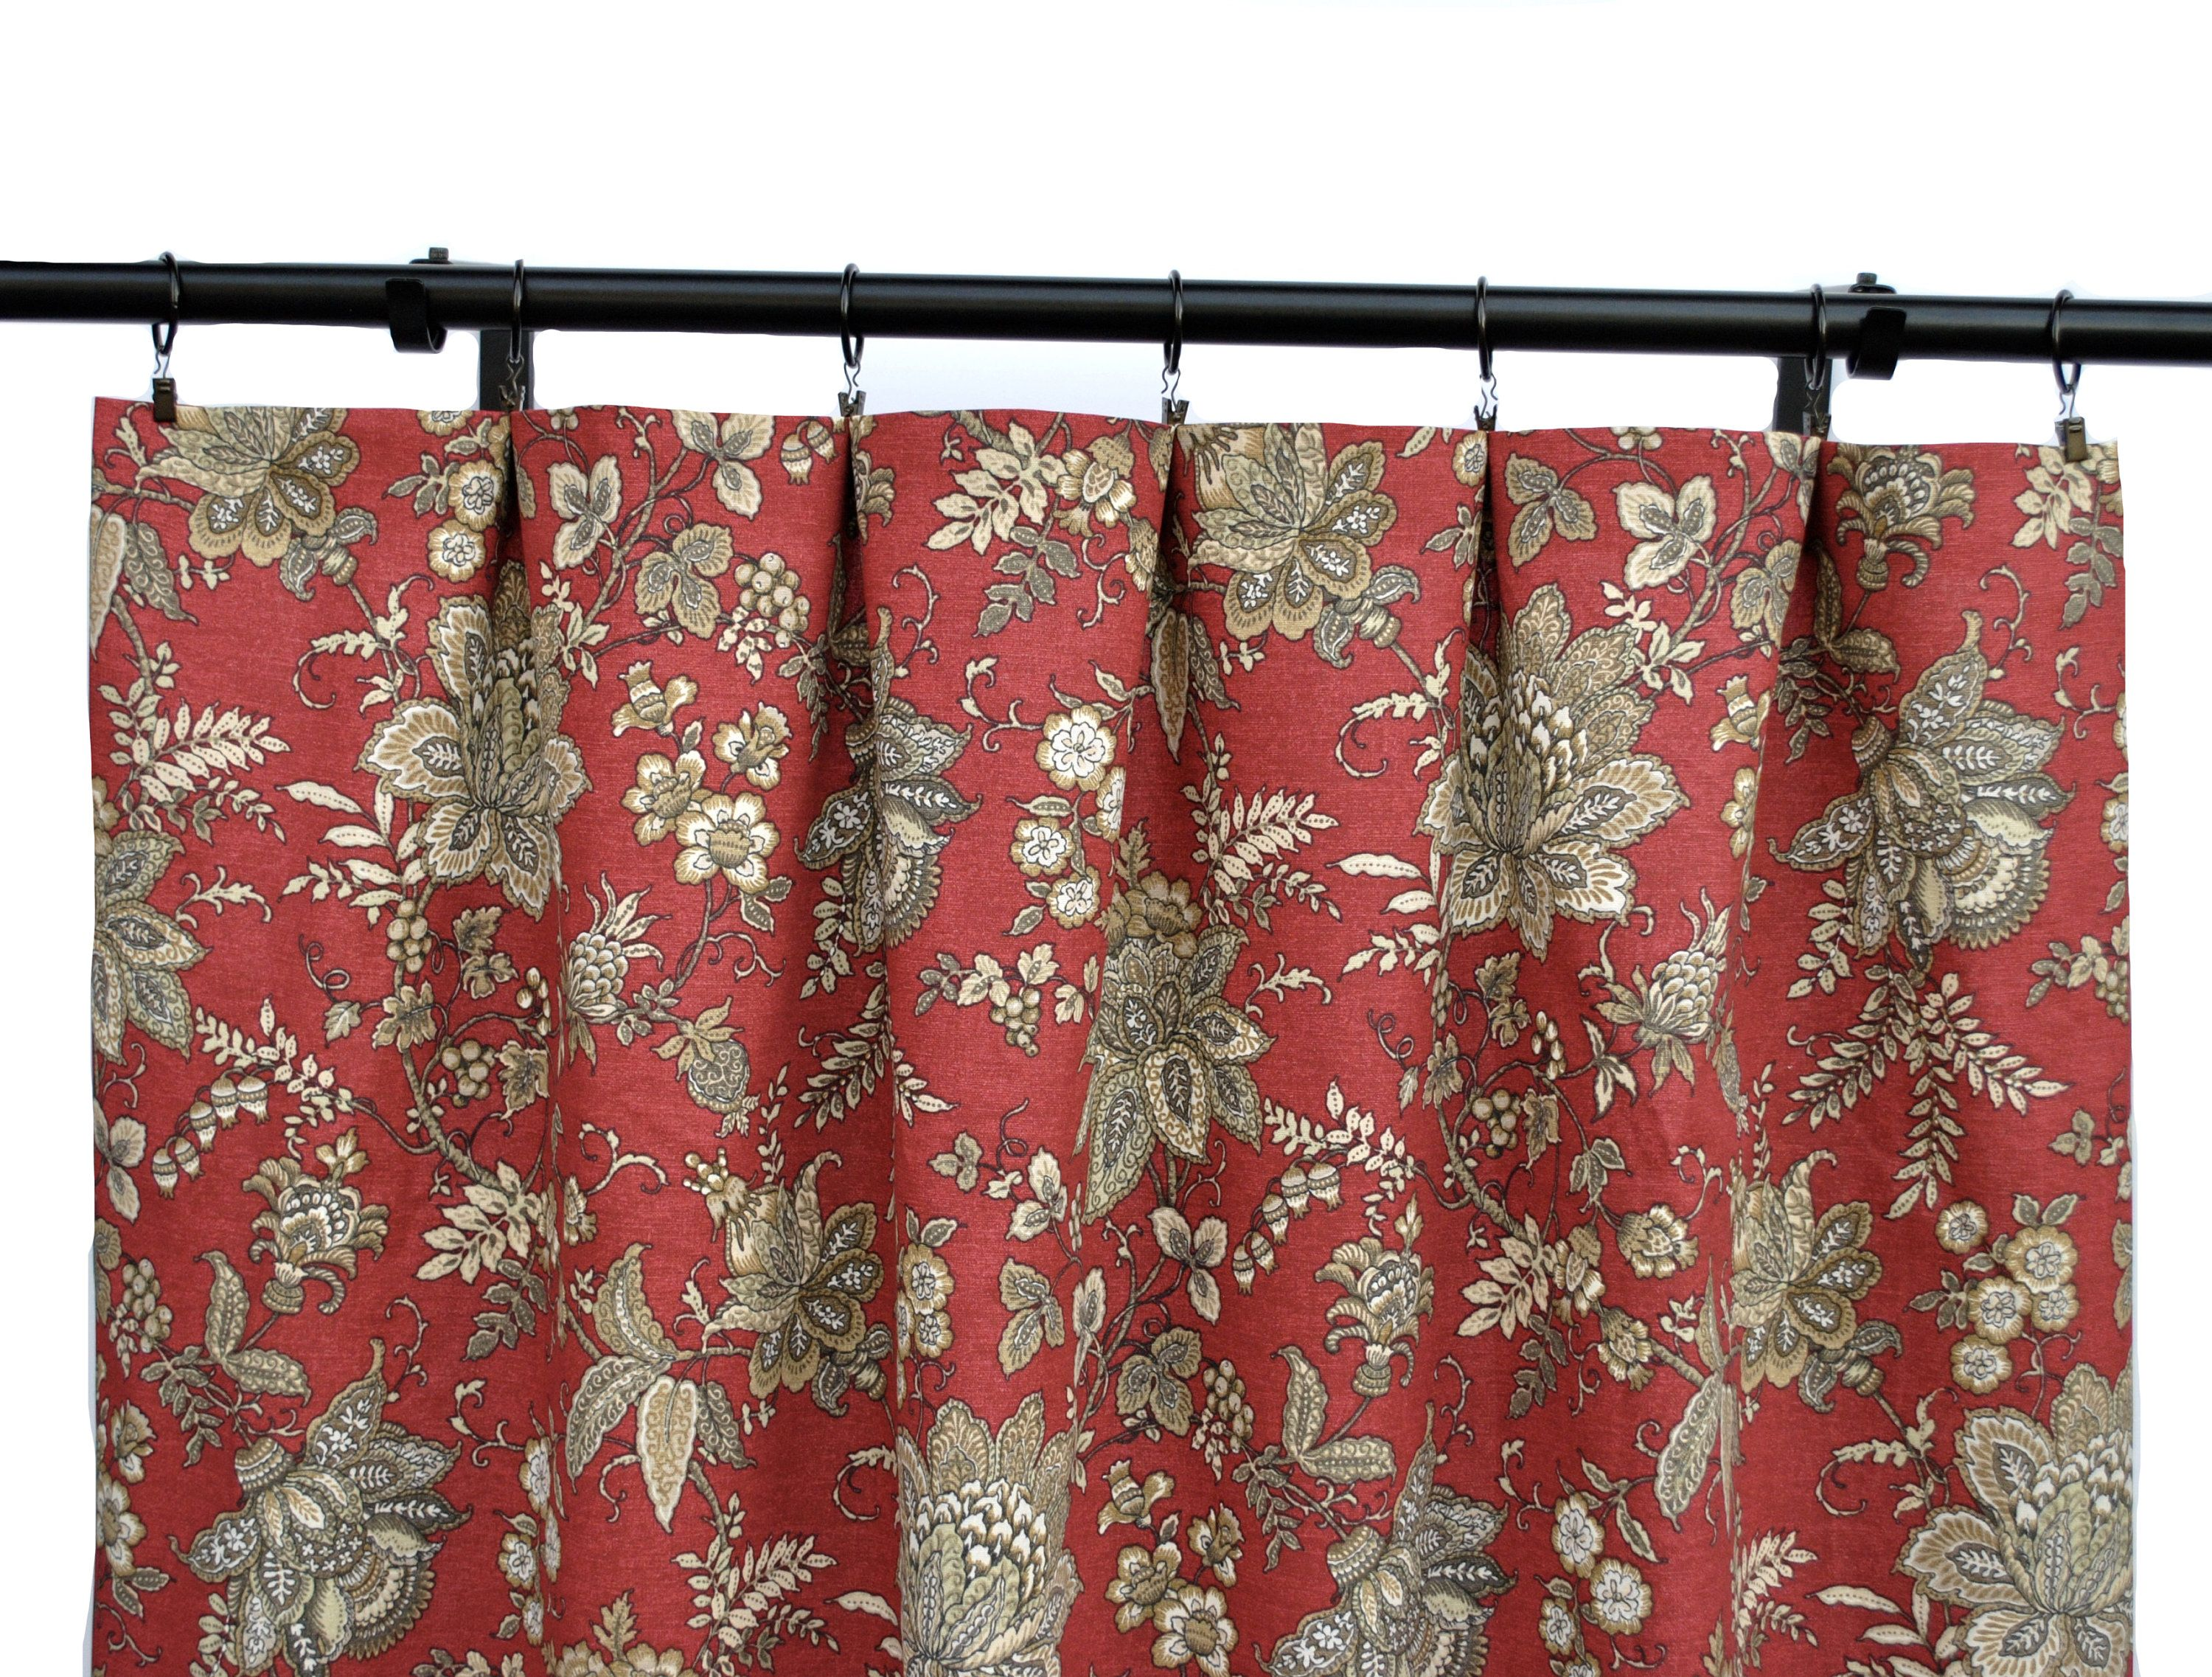 Magnolia Red Floral Curtains Dark Red Curtain 2 Curtain Panels